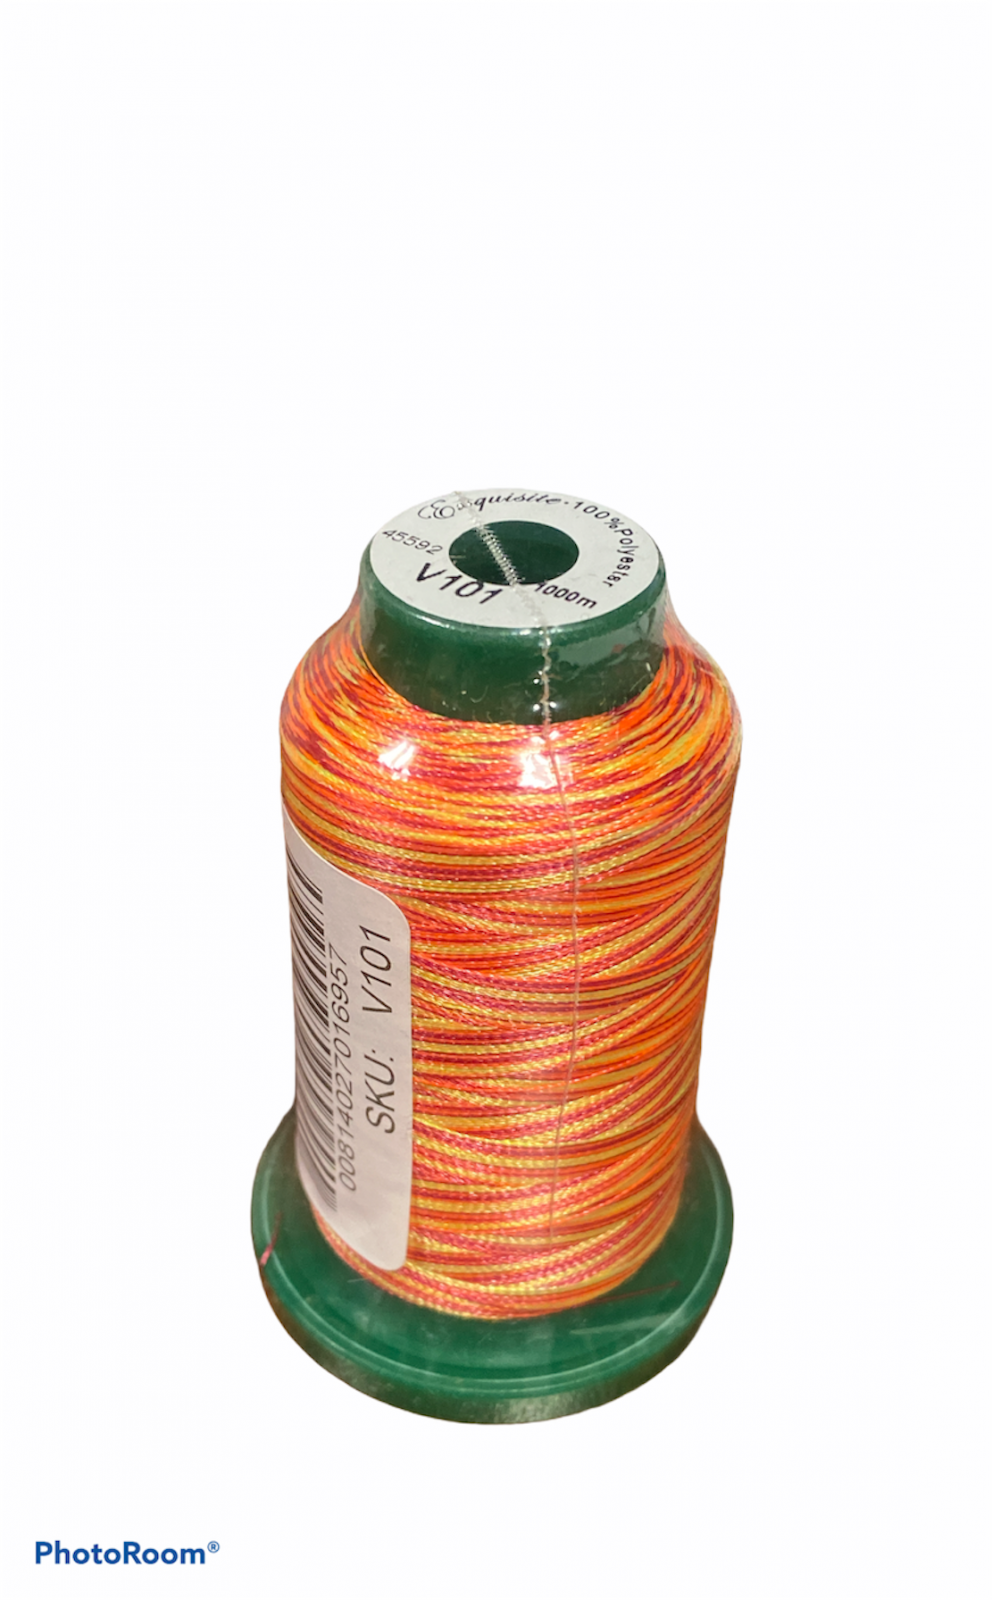 Medley Variegated Embroidery Thread - Sunset 1000 Meters (V101)